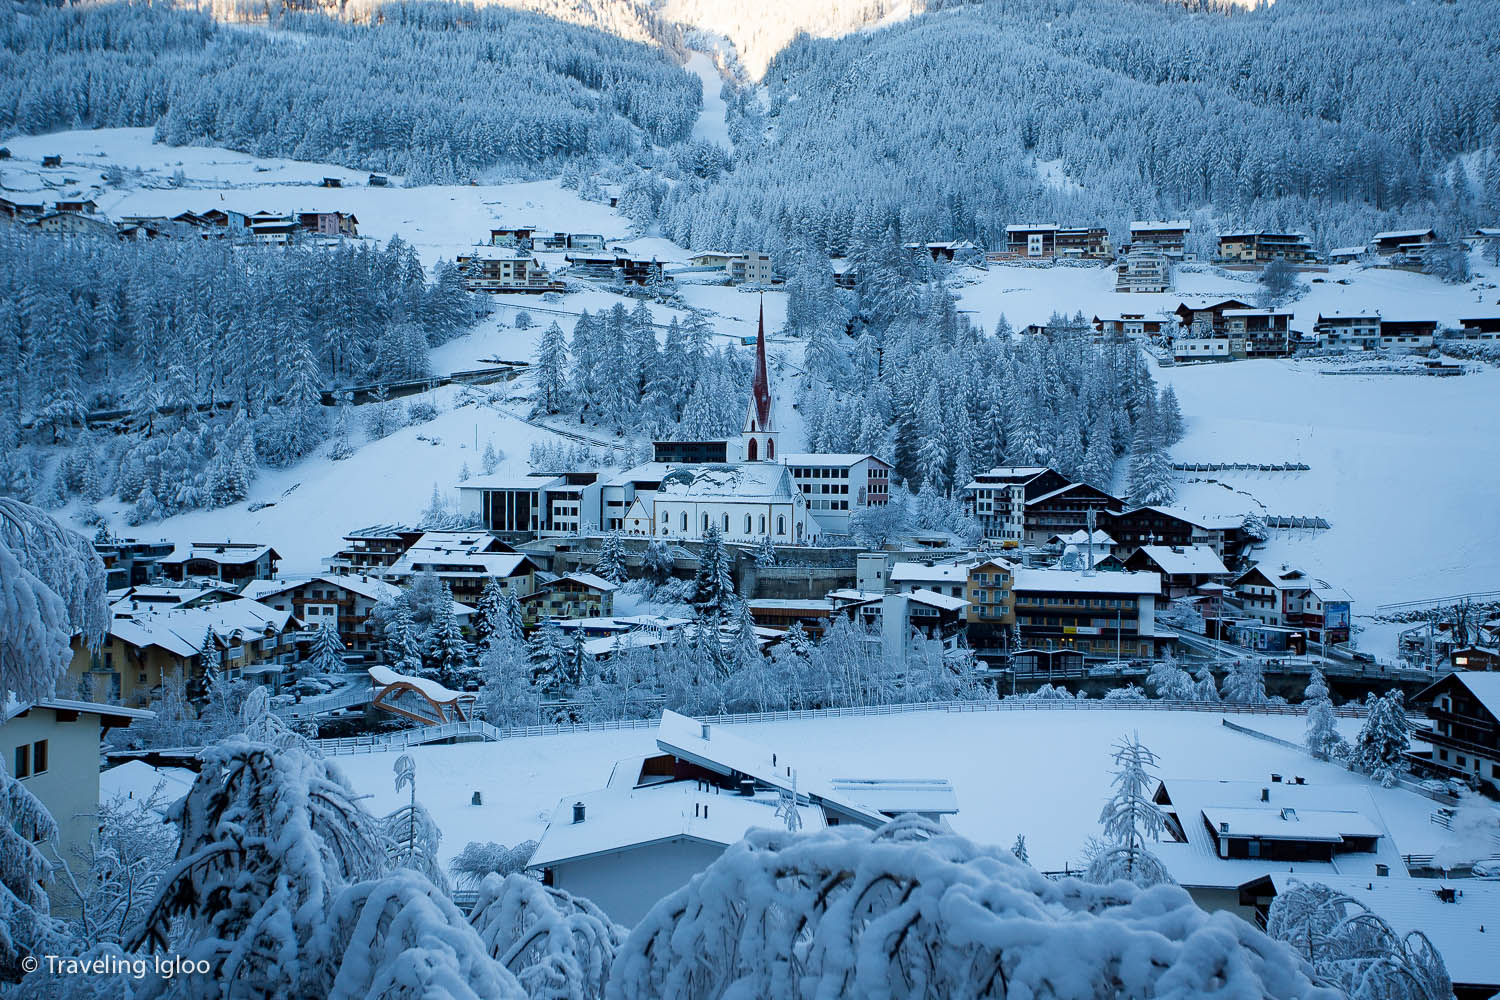 A look at the cute and small downtown Sölden